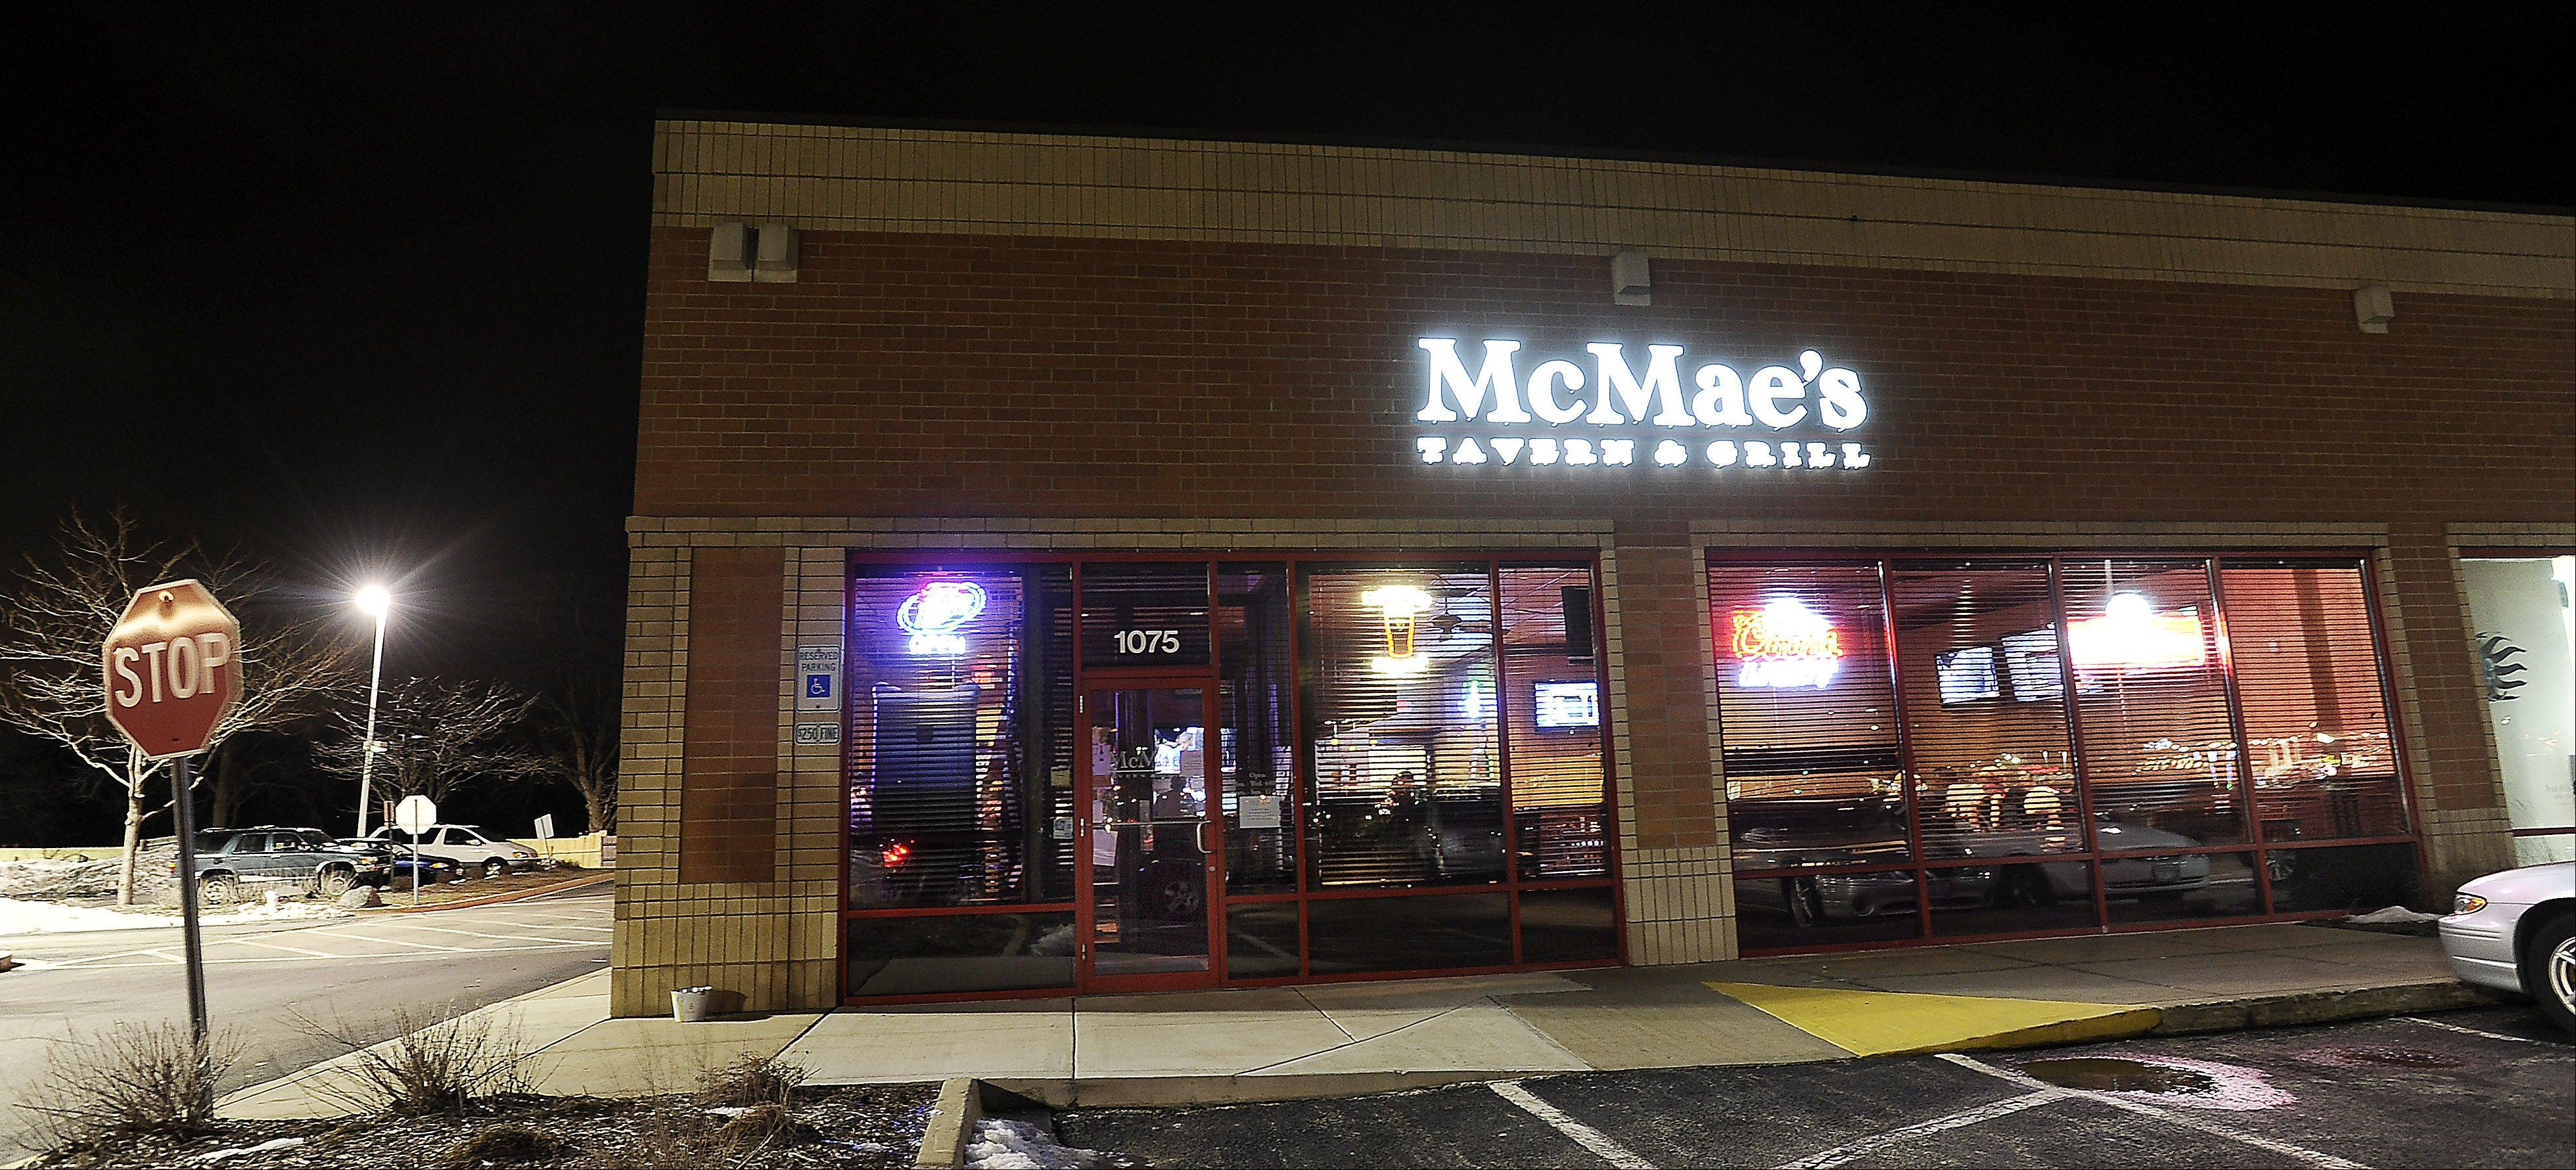 McMae's Tavern & Grill attracts people looking for a good meal or a place to watch the game.